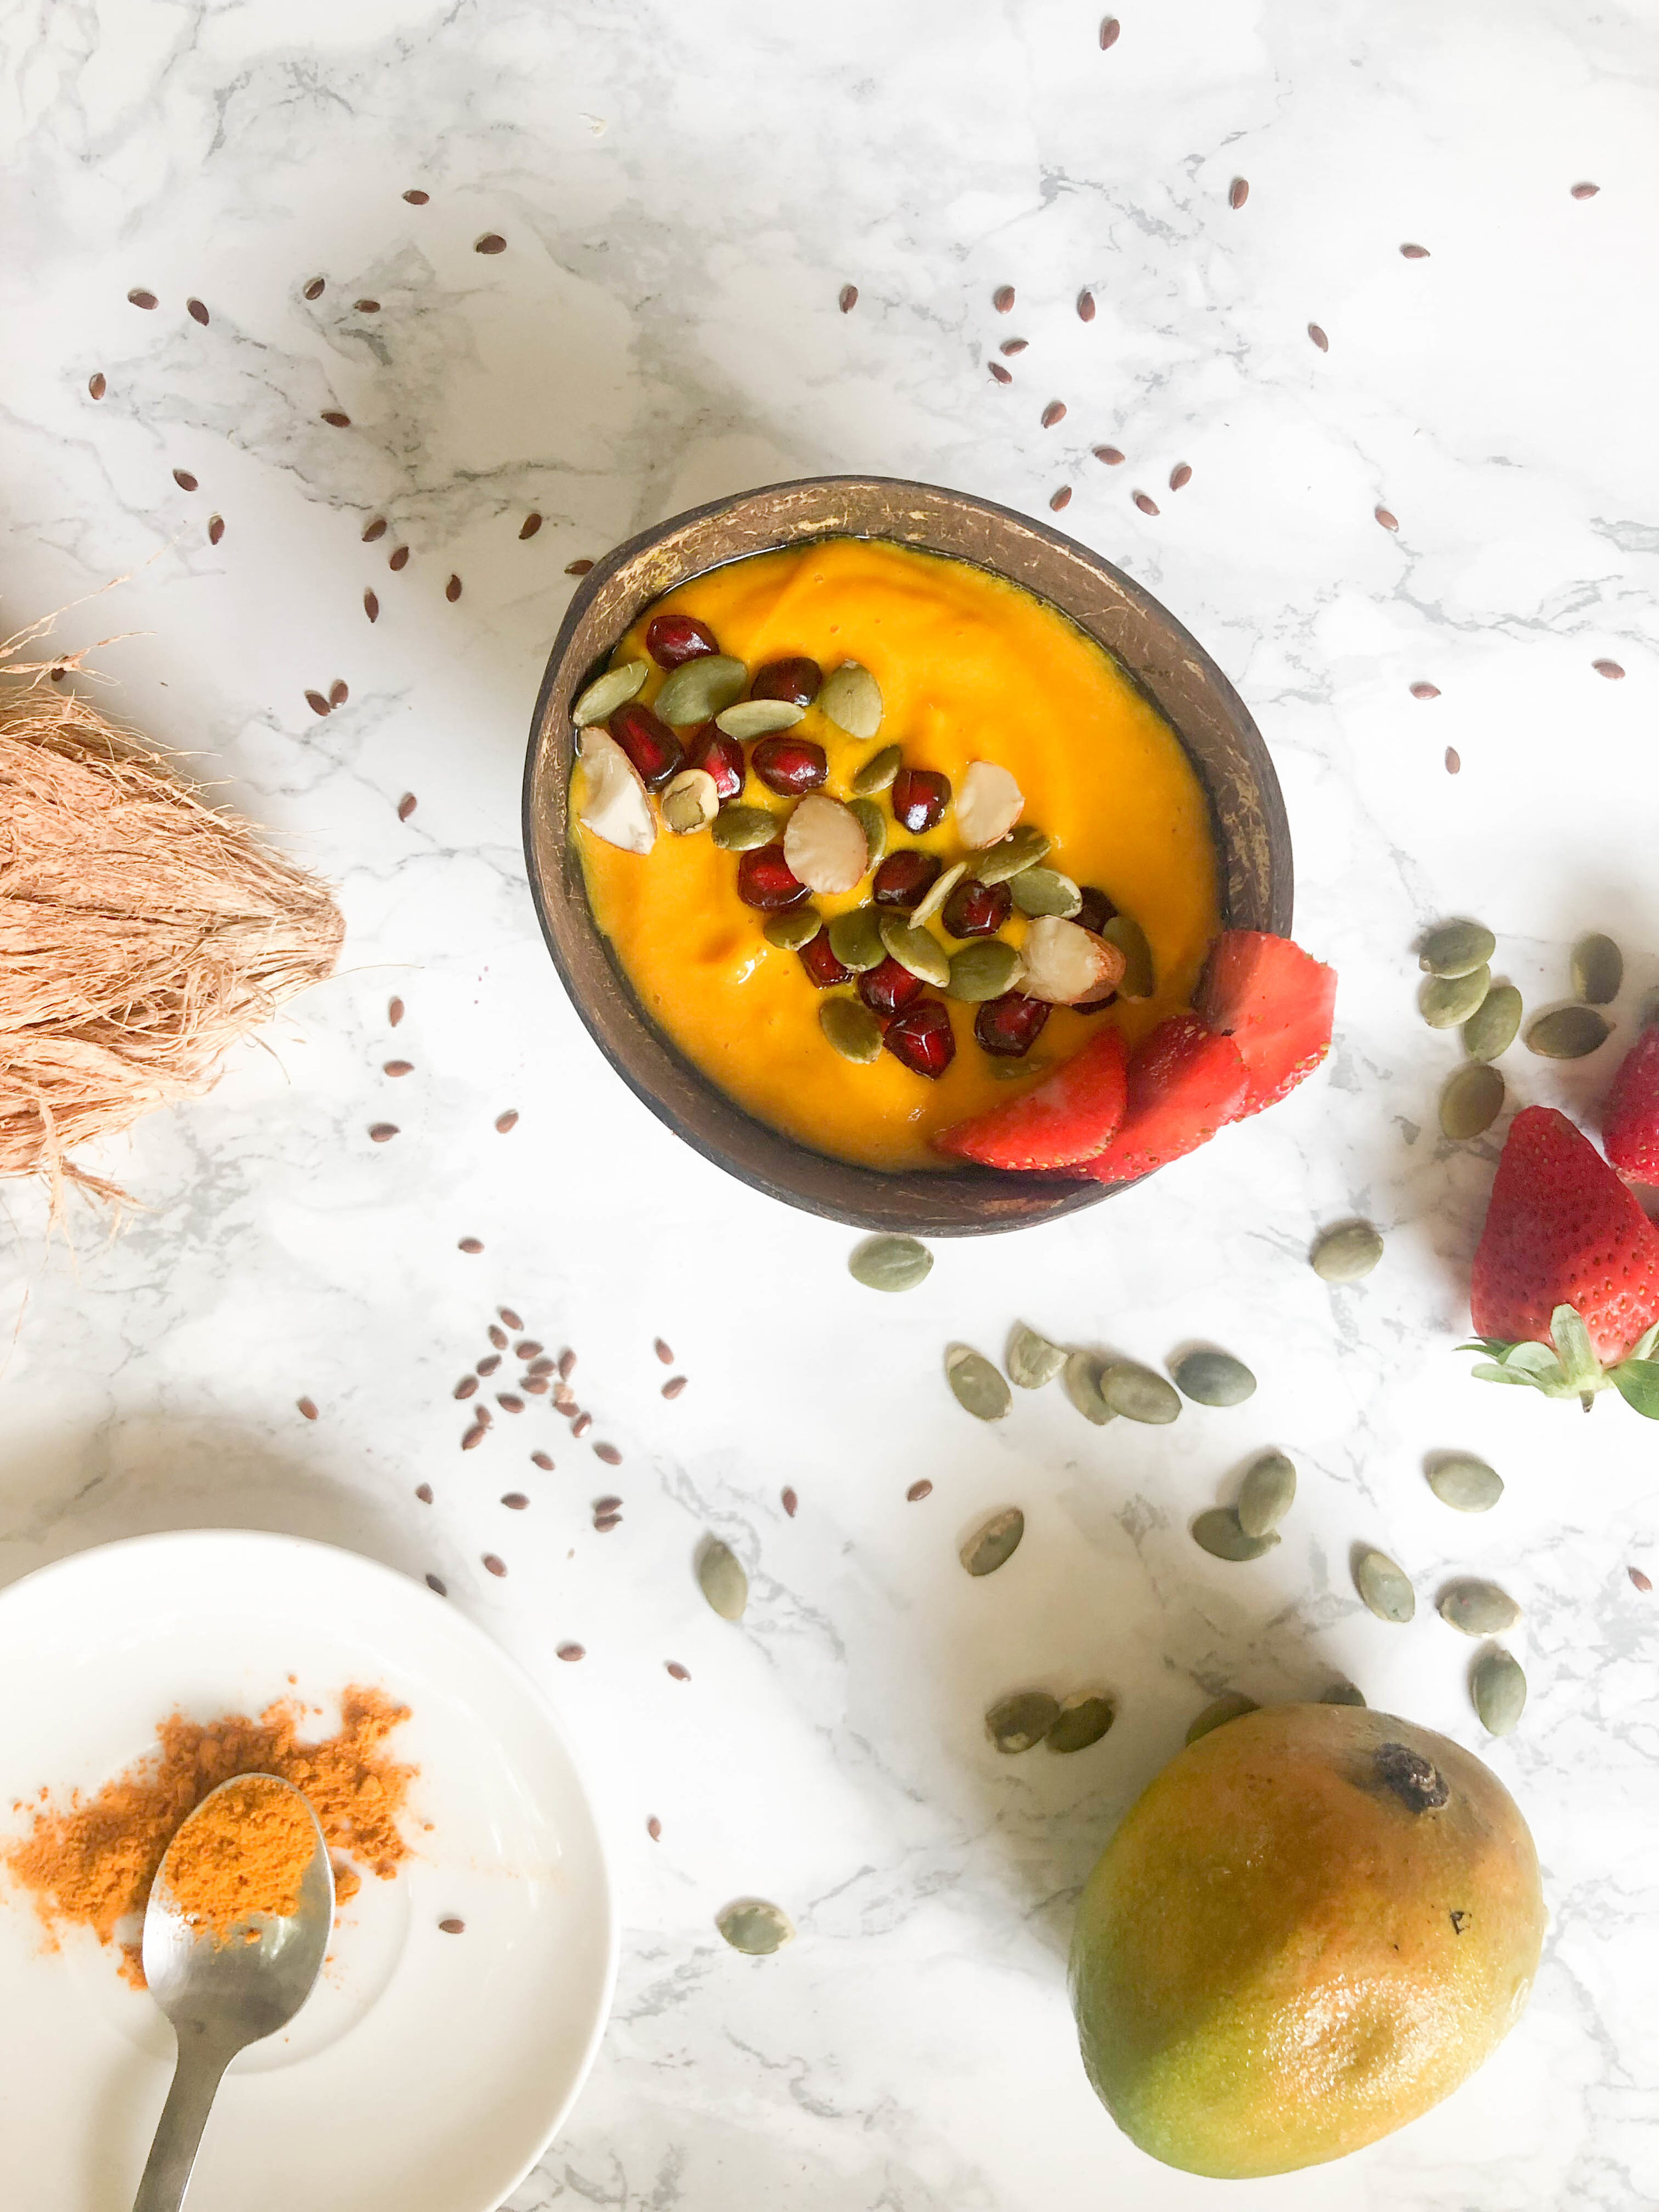 Mango Smoothie Bowl infused with turmeric and ginger